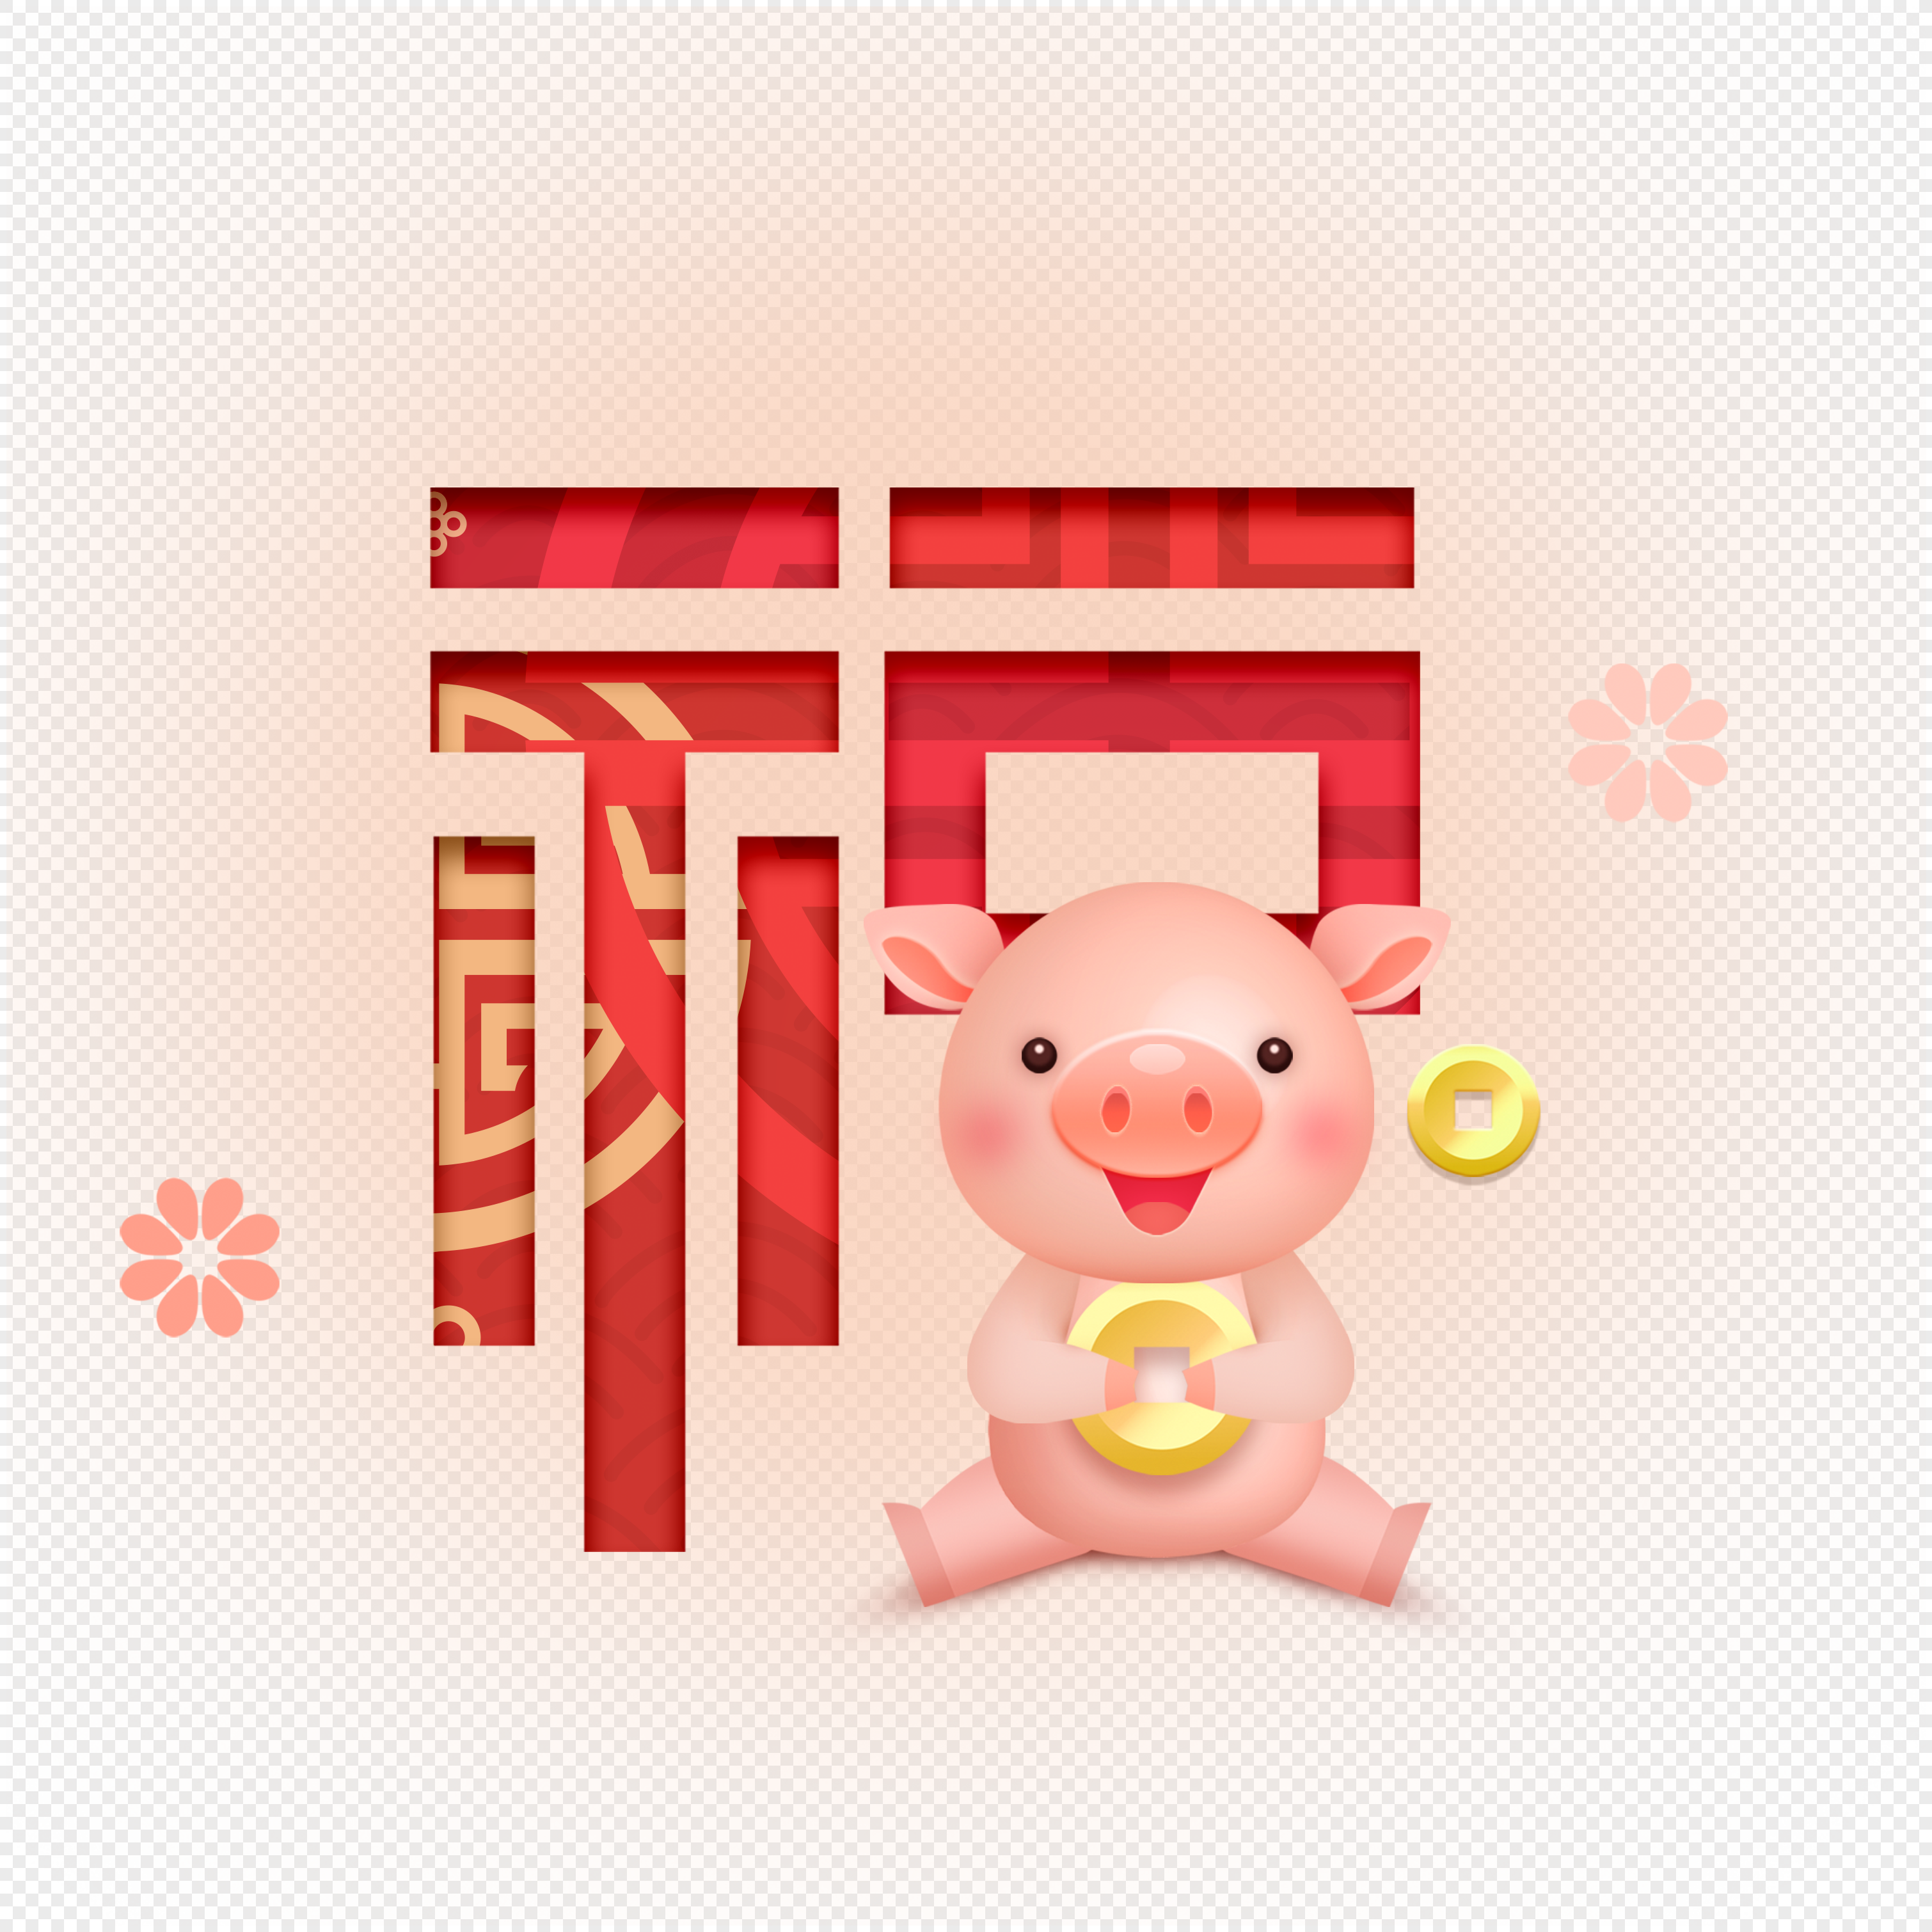 pink pig i wish you a happy new year